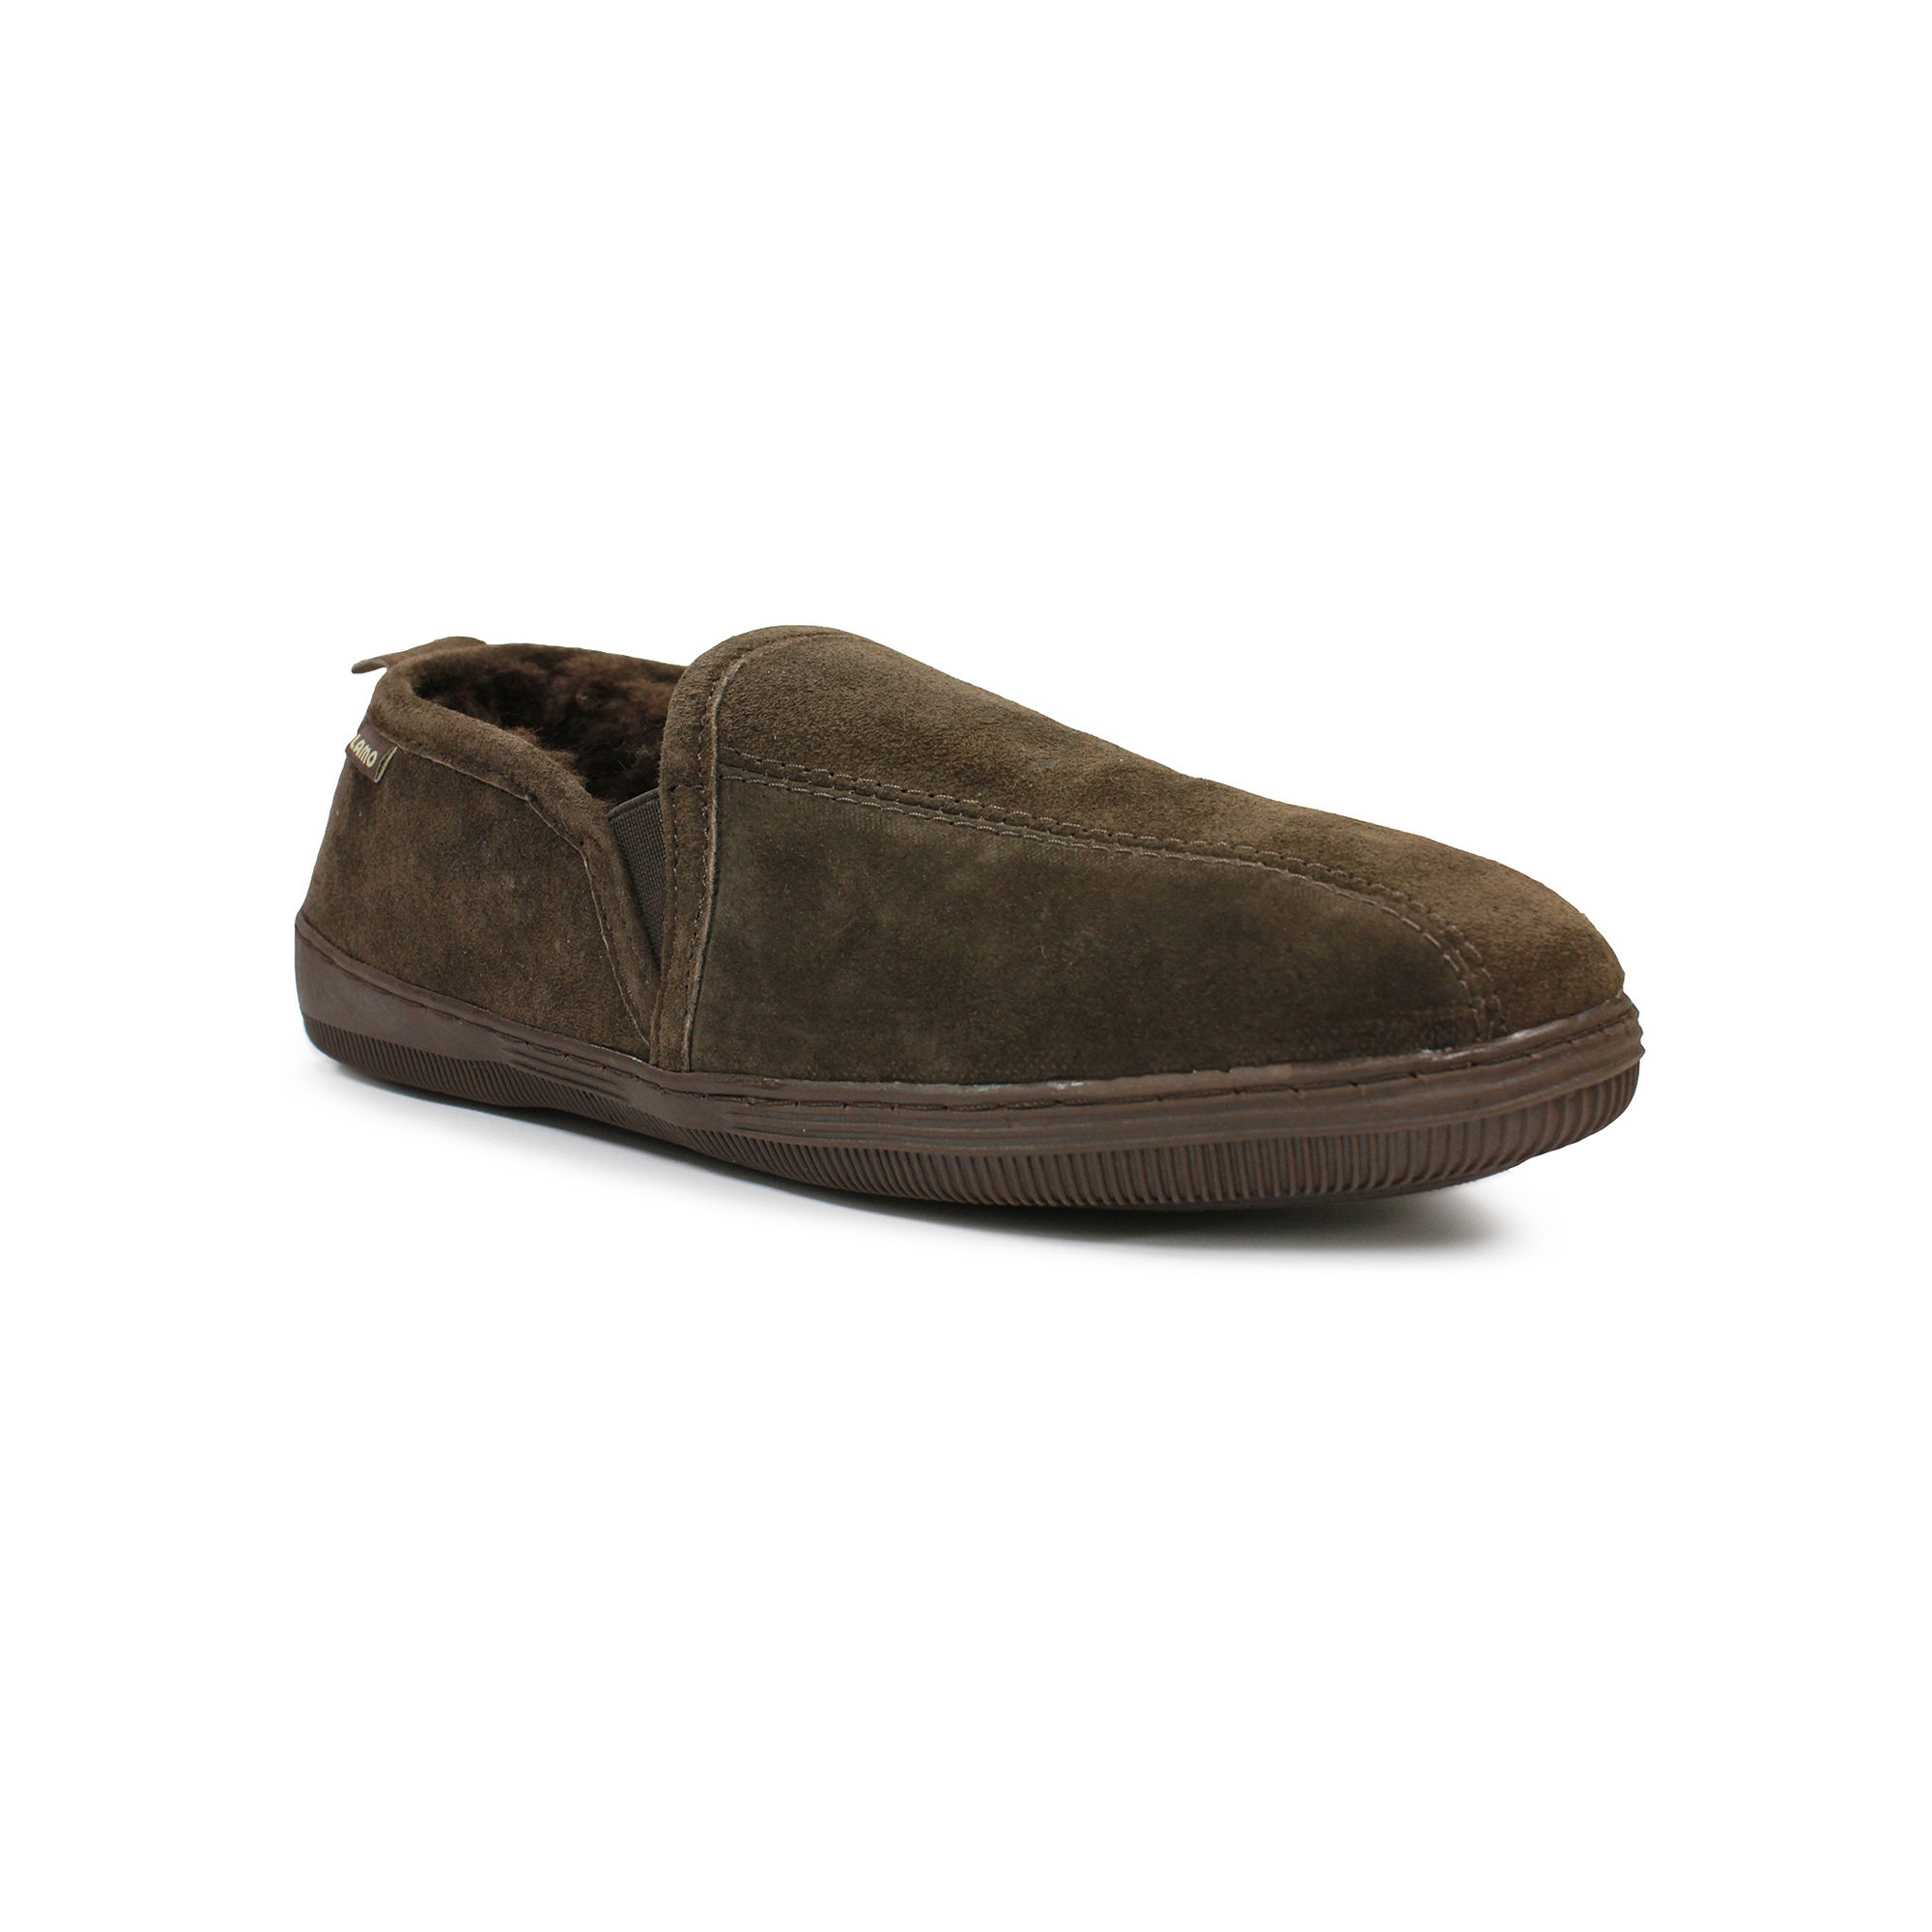 Jcpenney Mens Slippers Search